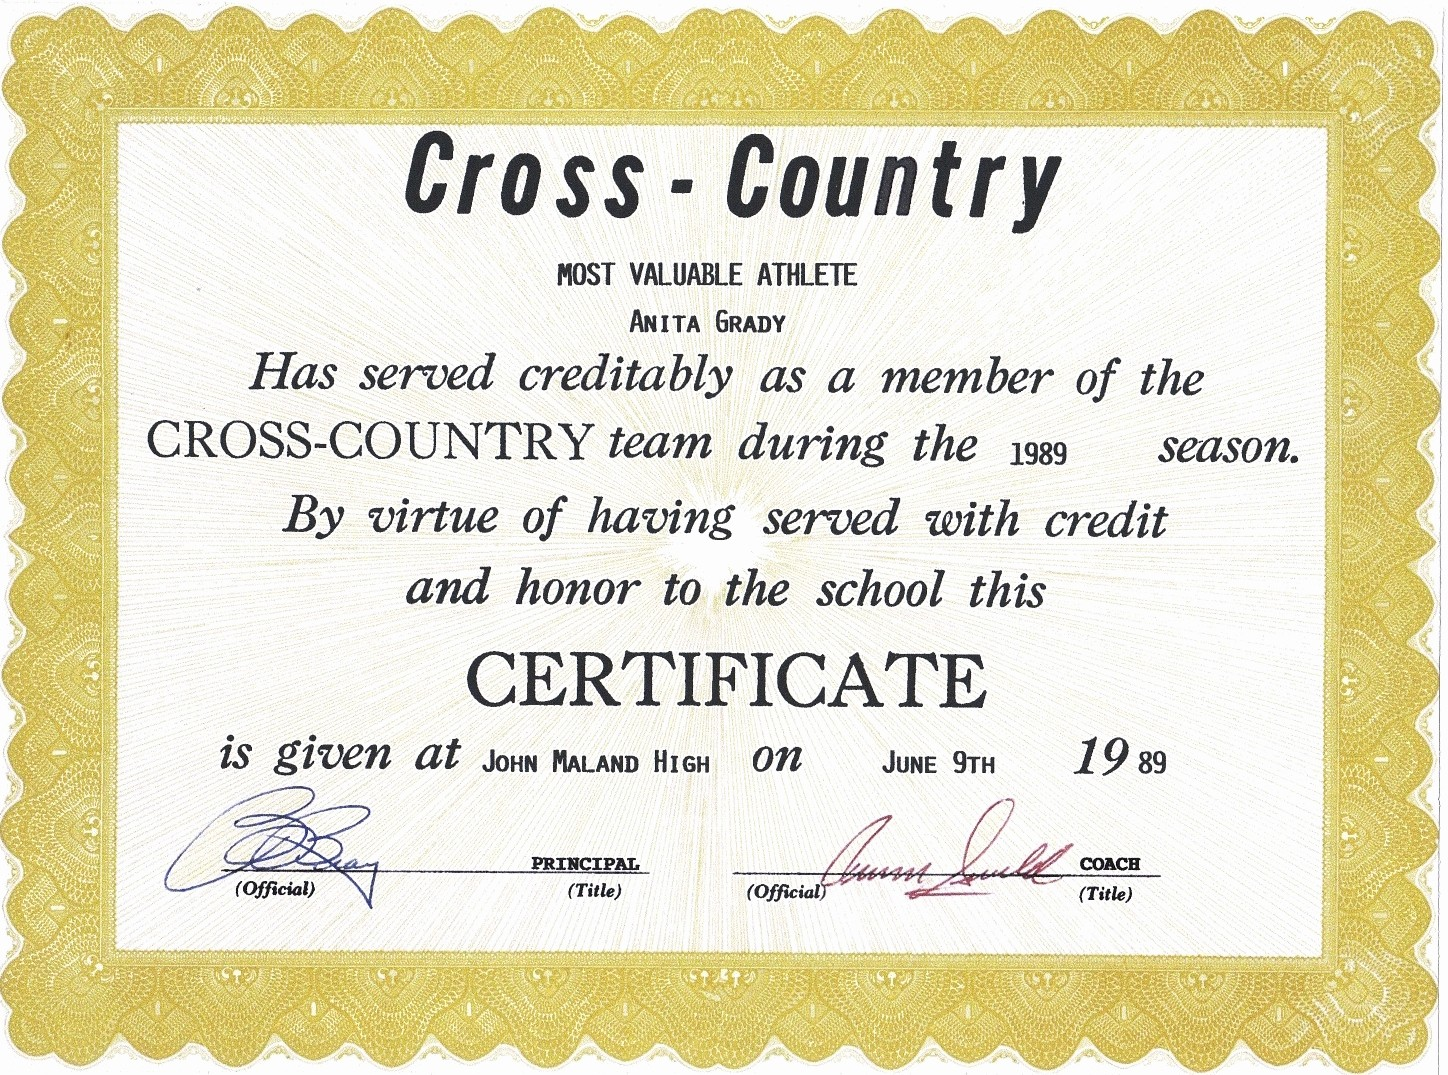 Student Council Award Certificate Template New Student Council Award Certificates Christopherbathum